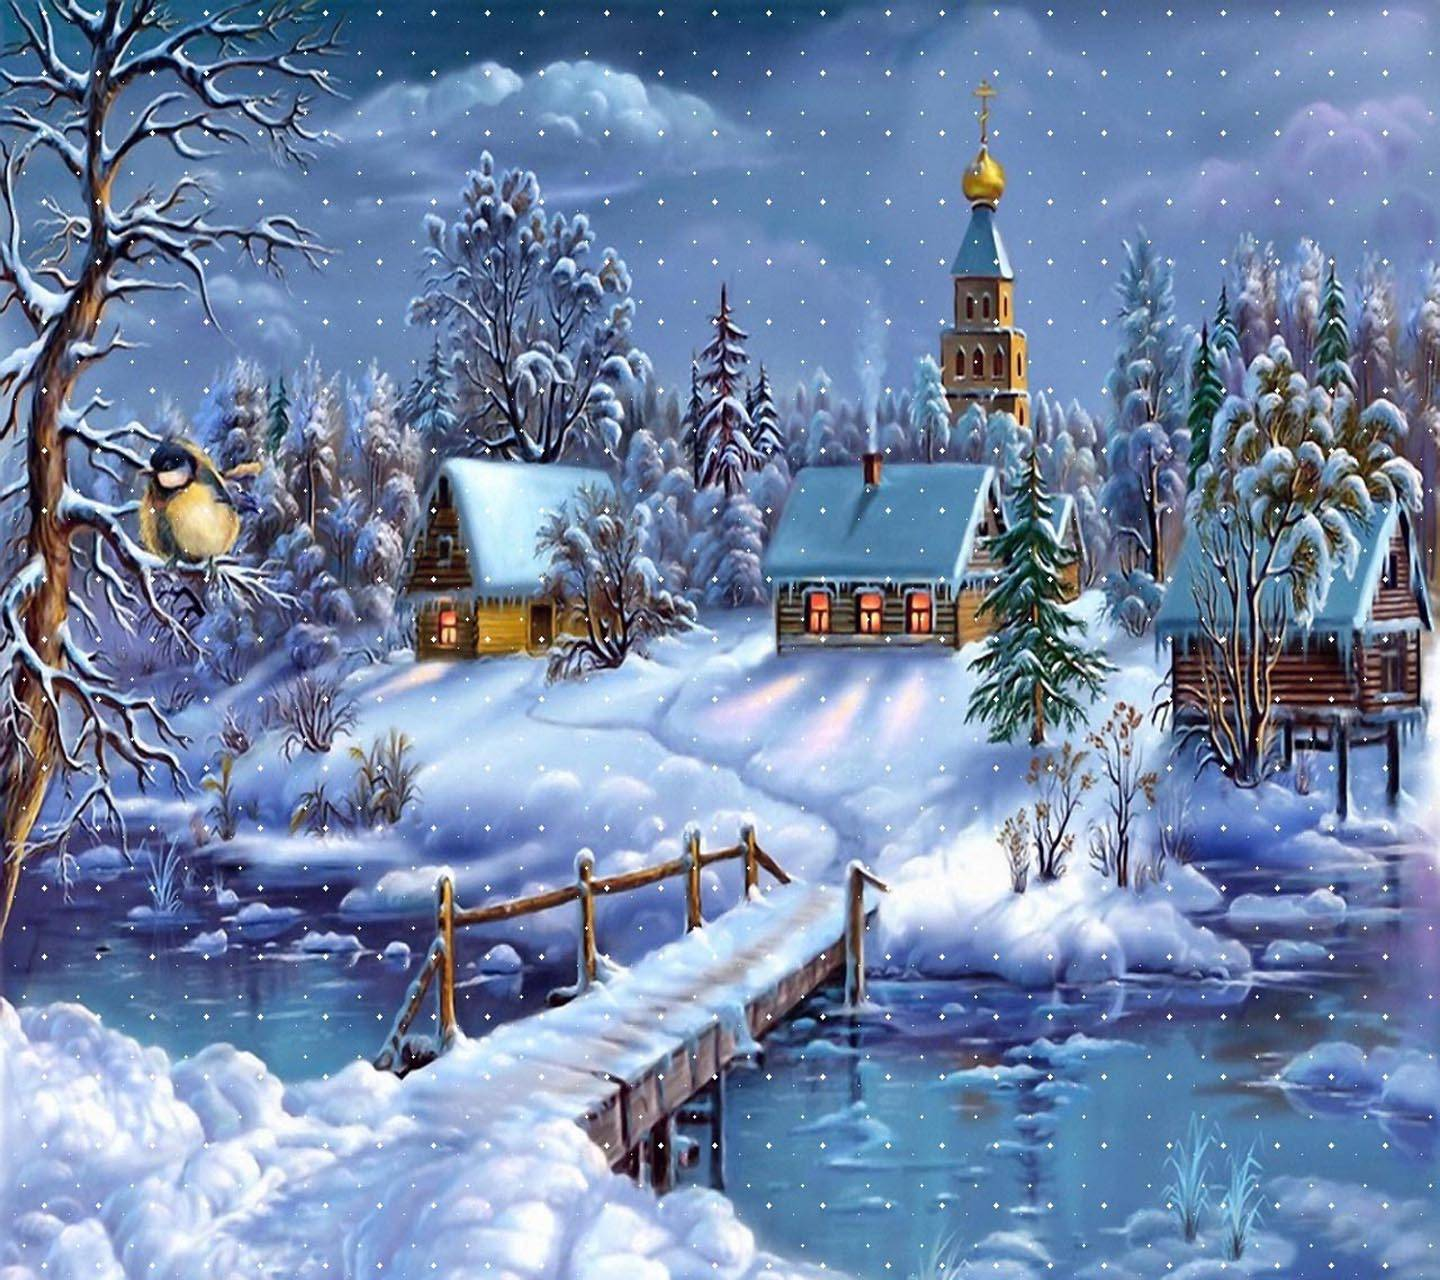 Winter Dreamland